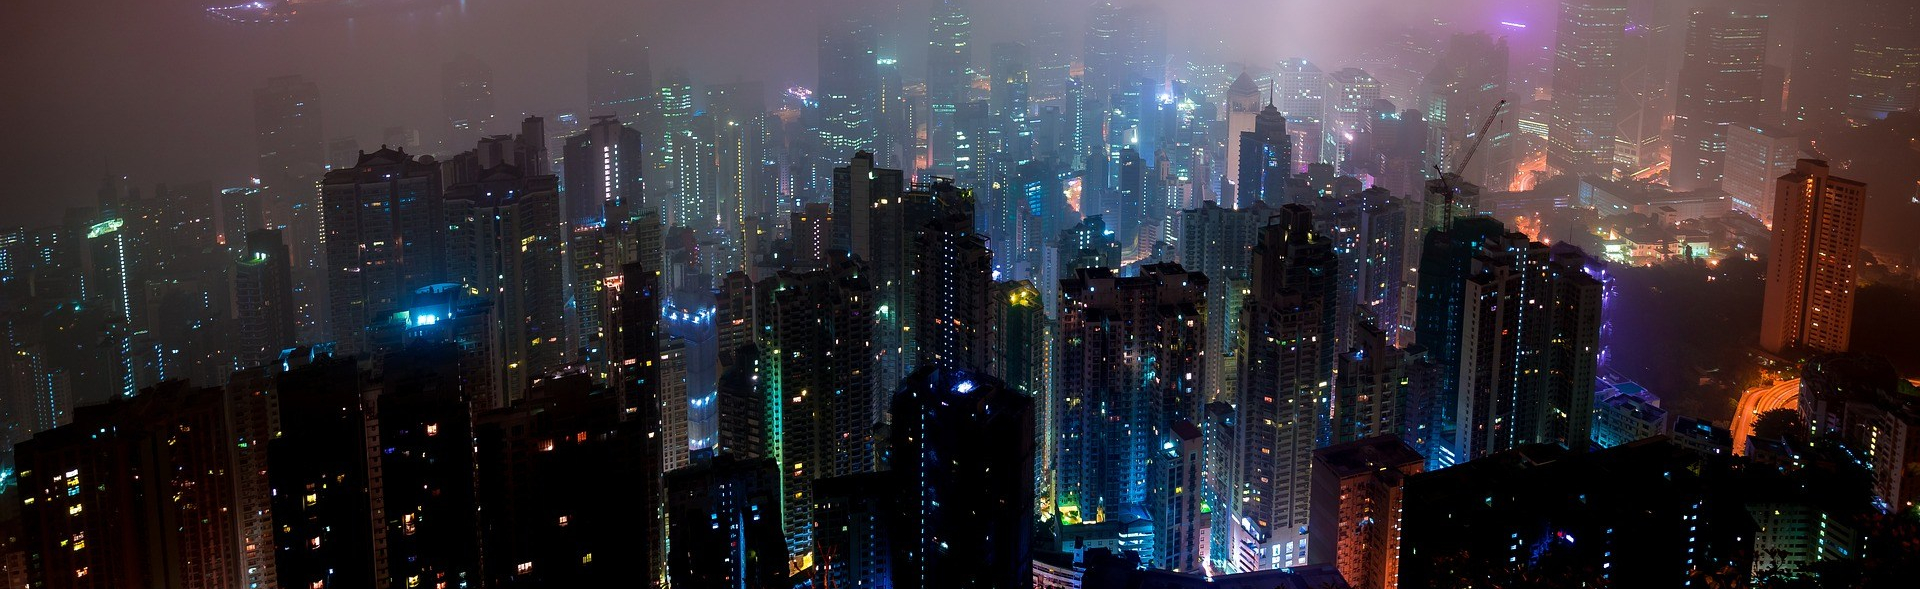 Hong Kong, city, mist